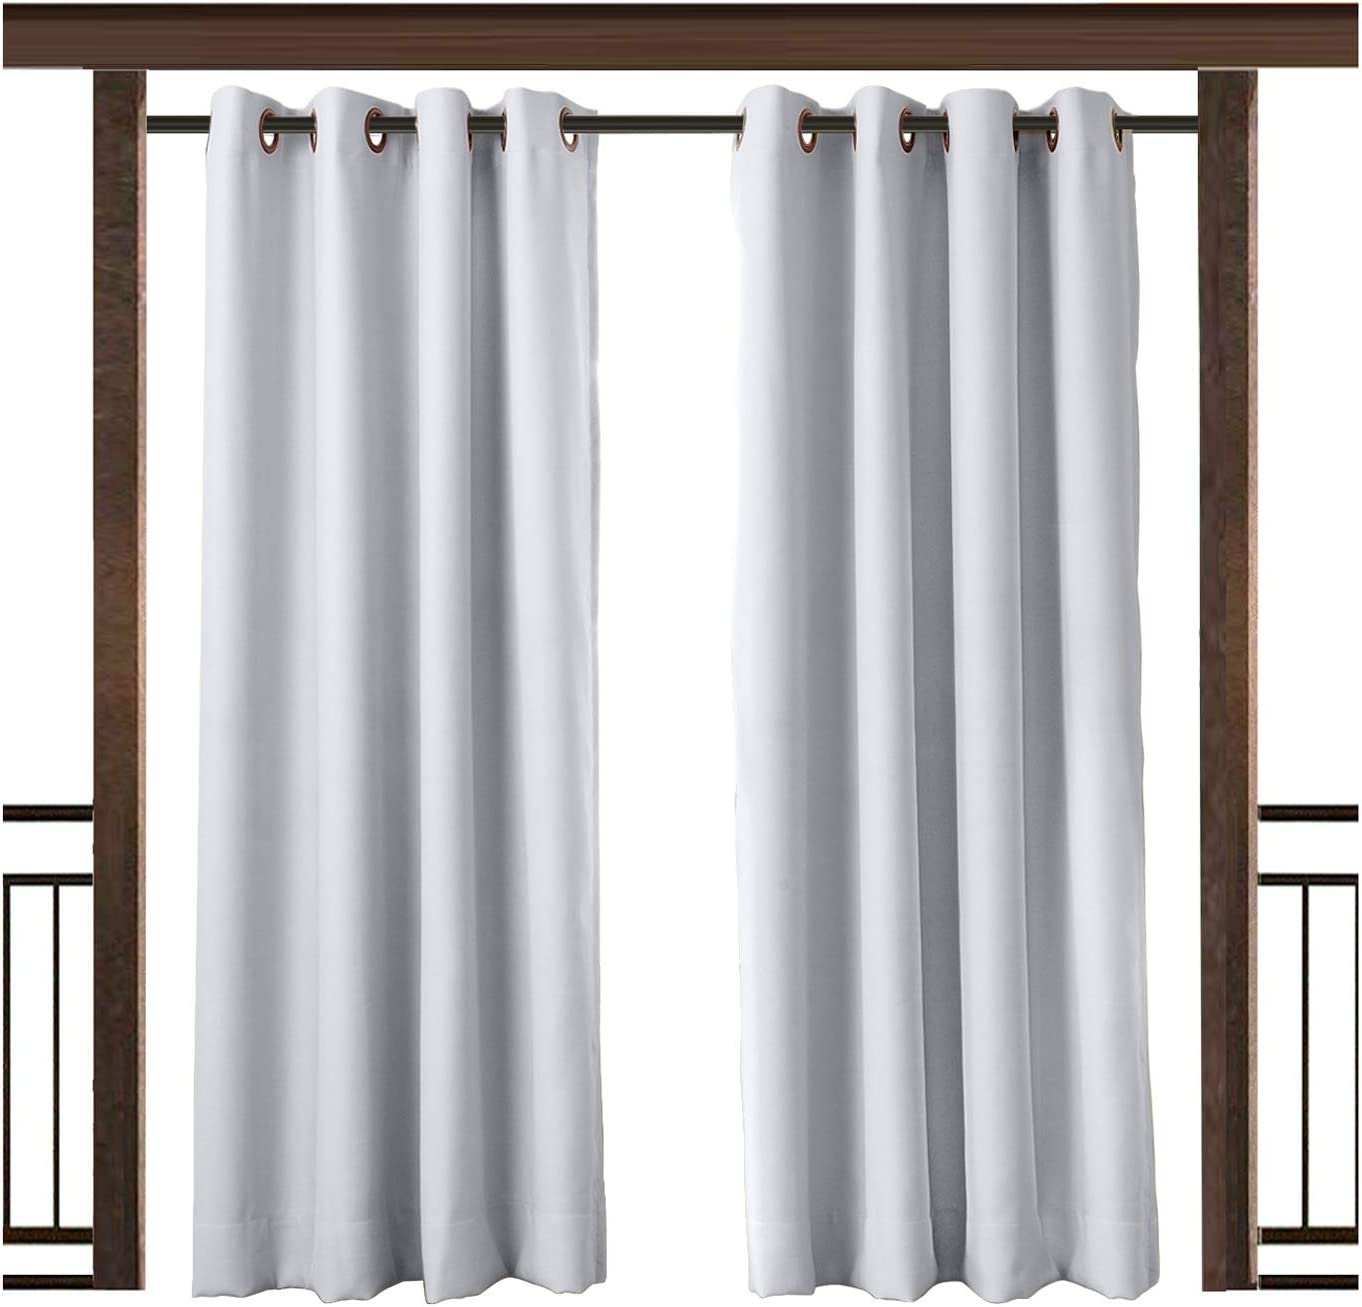 TWOPAGES Ranking TOP4 Gray White Outdoor Rustproof Curtain Waterproof quality assurance Grommet